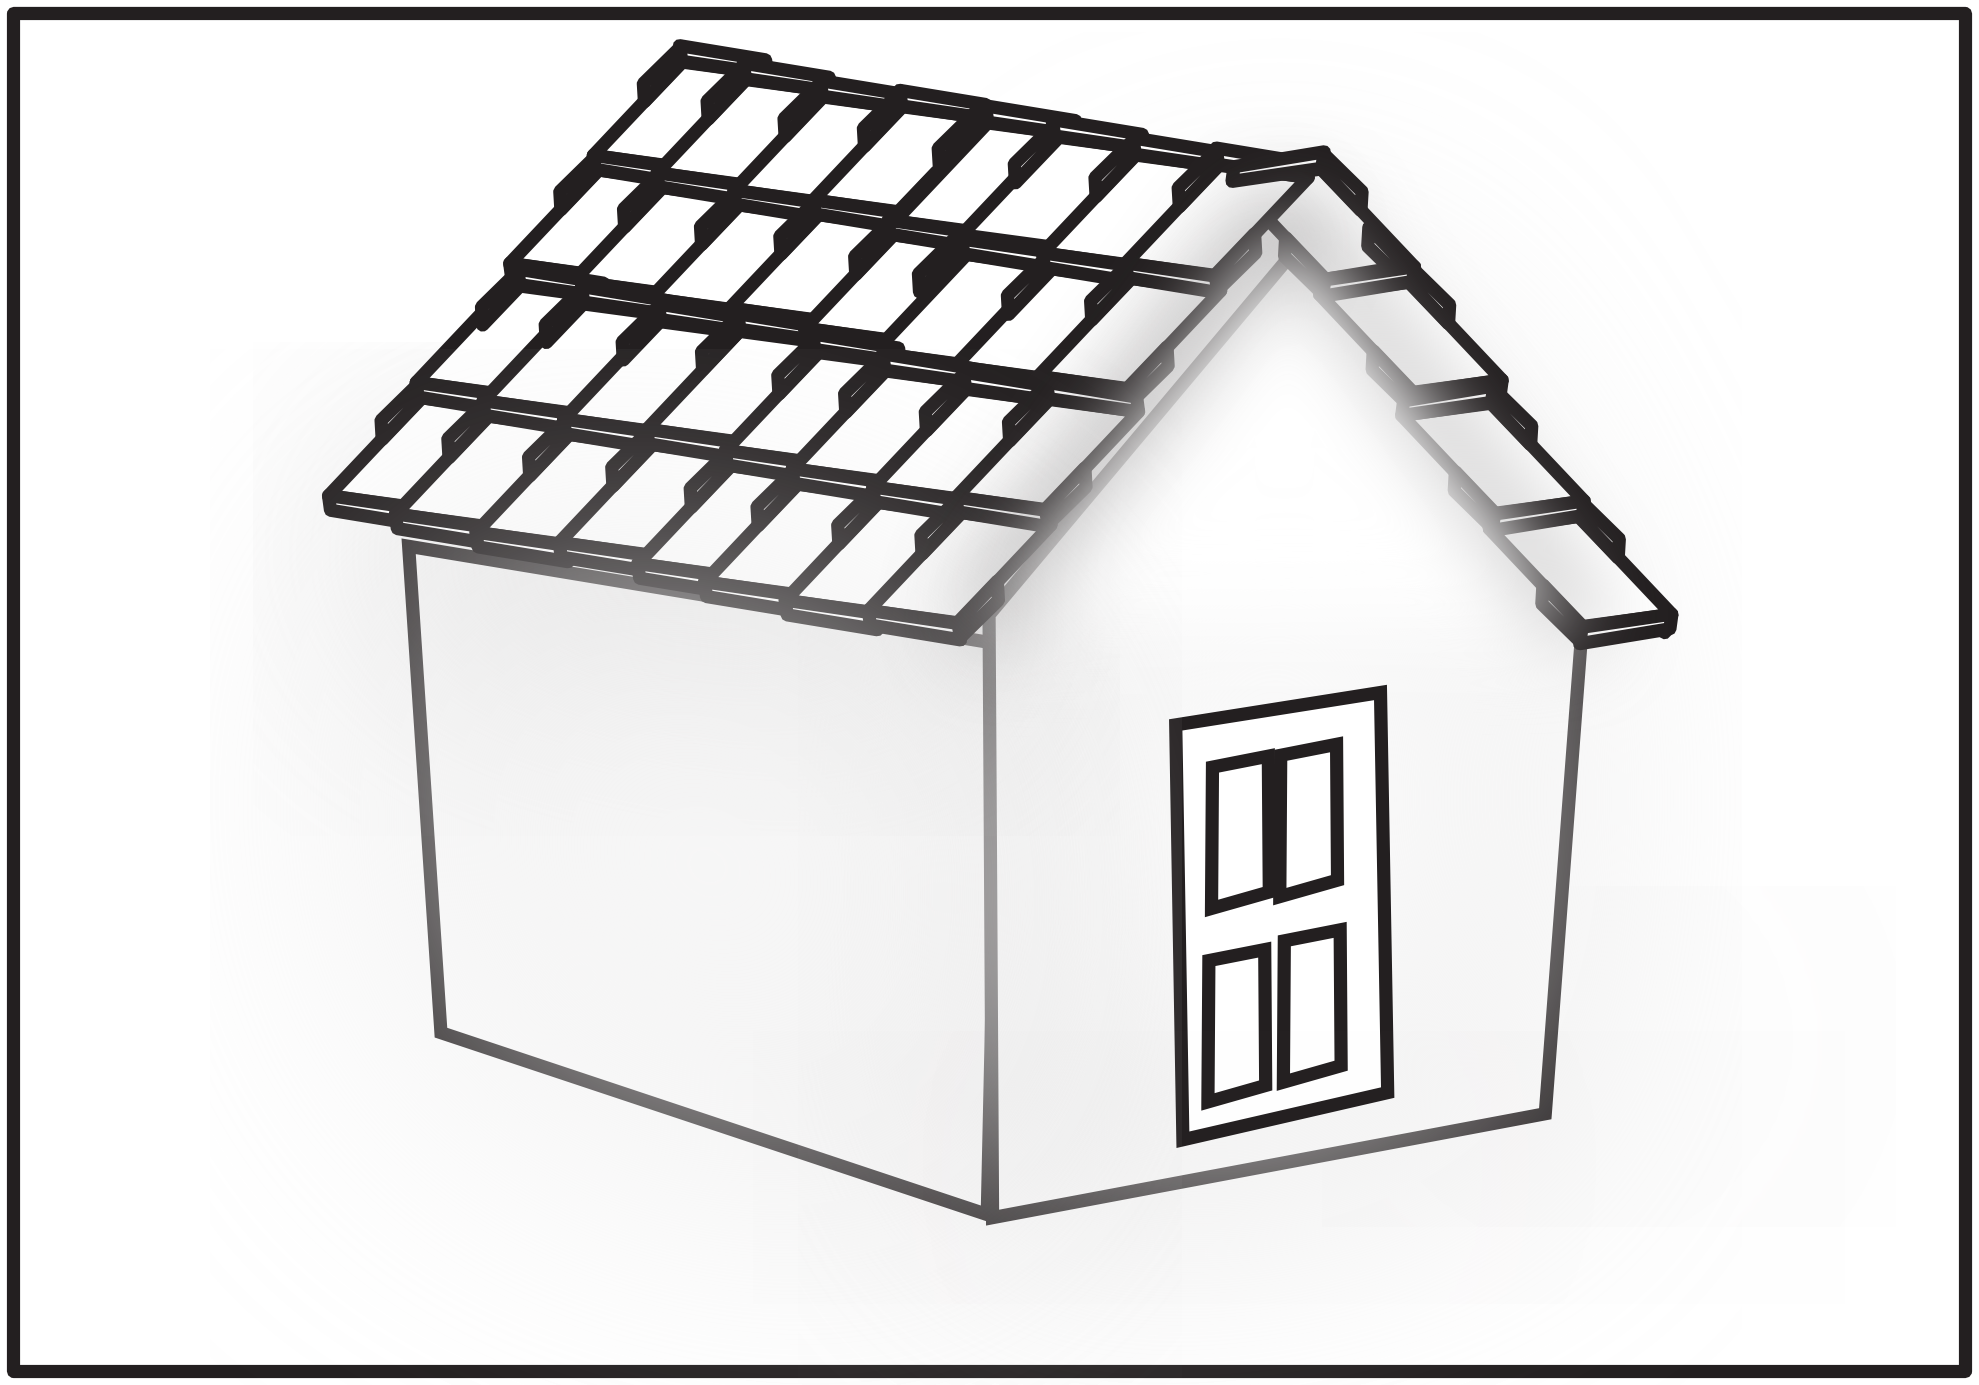 Line Art Images Of Houses : House line art cliparts